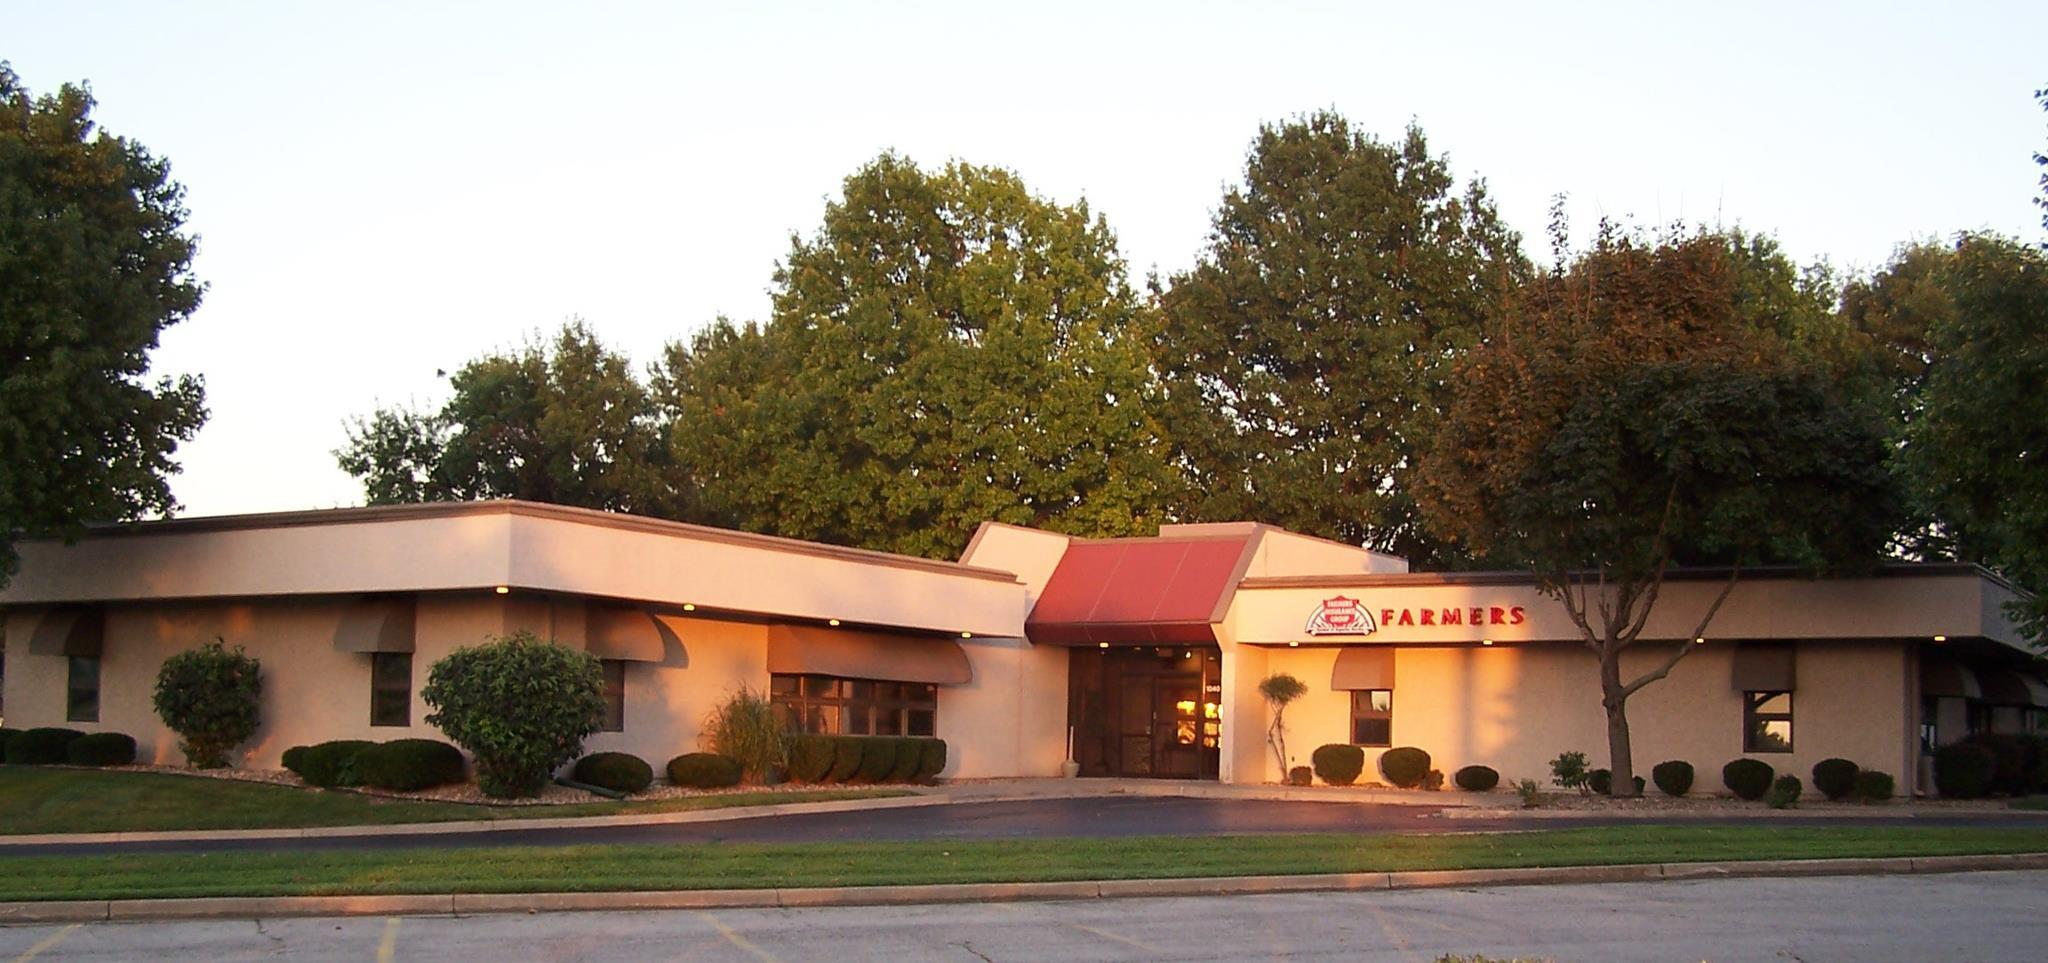 Office address: 1040 NW South Outer Rd, Blue Springs, MO 64015